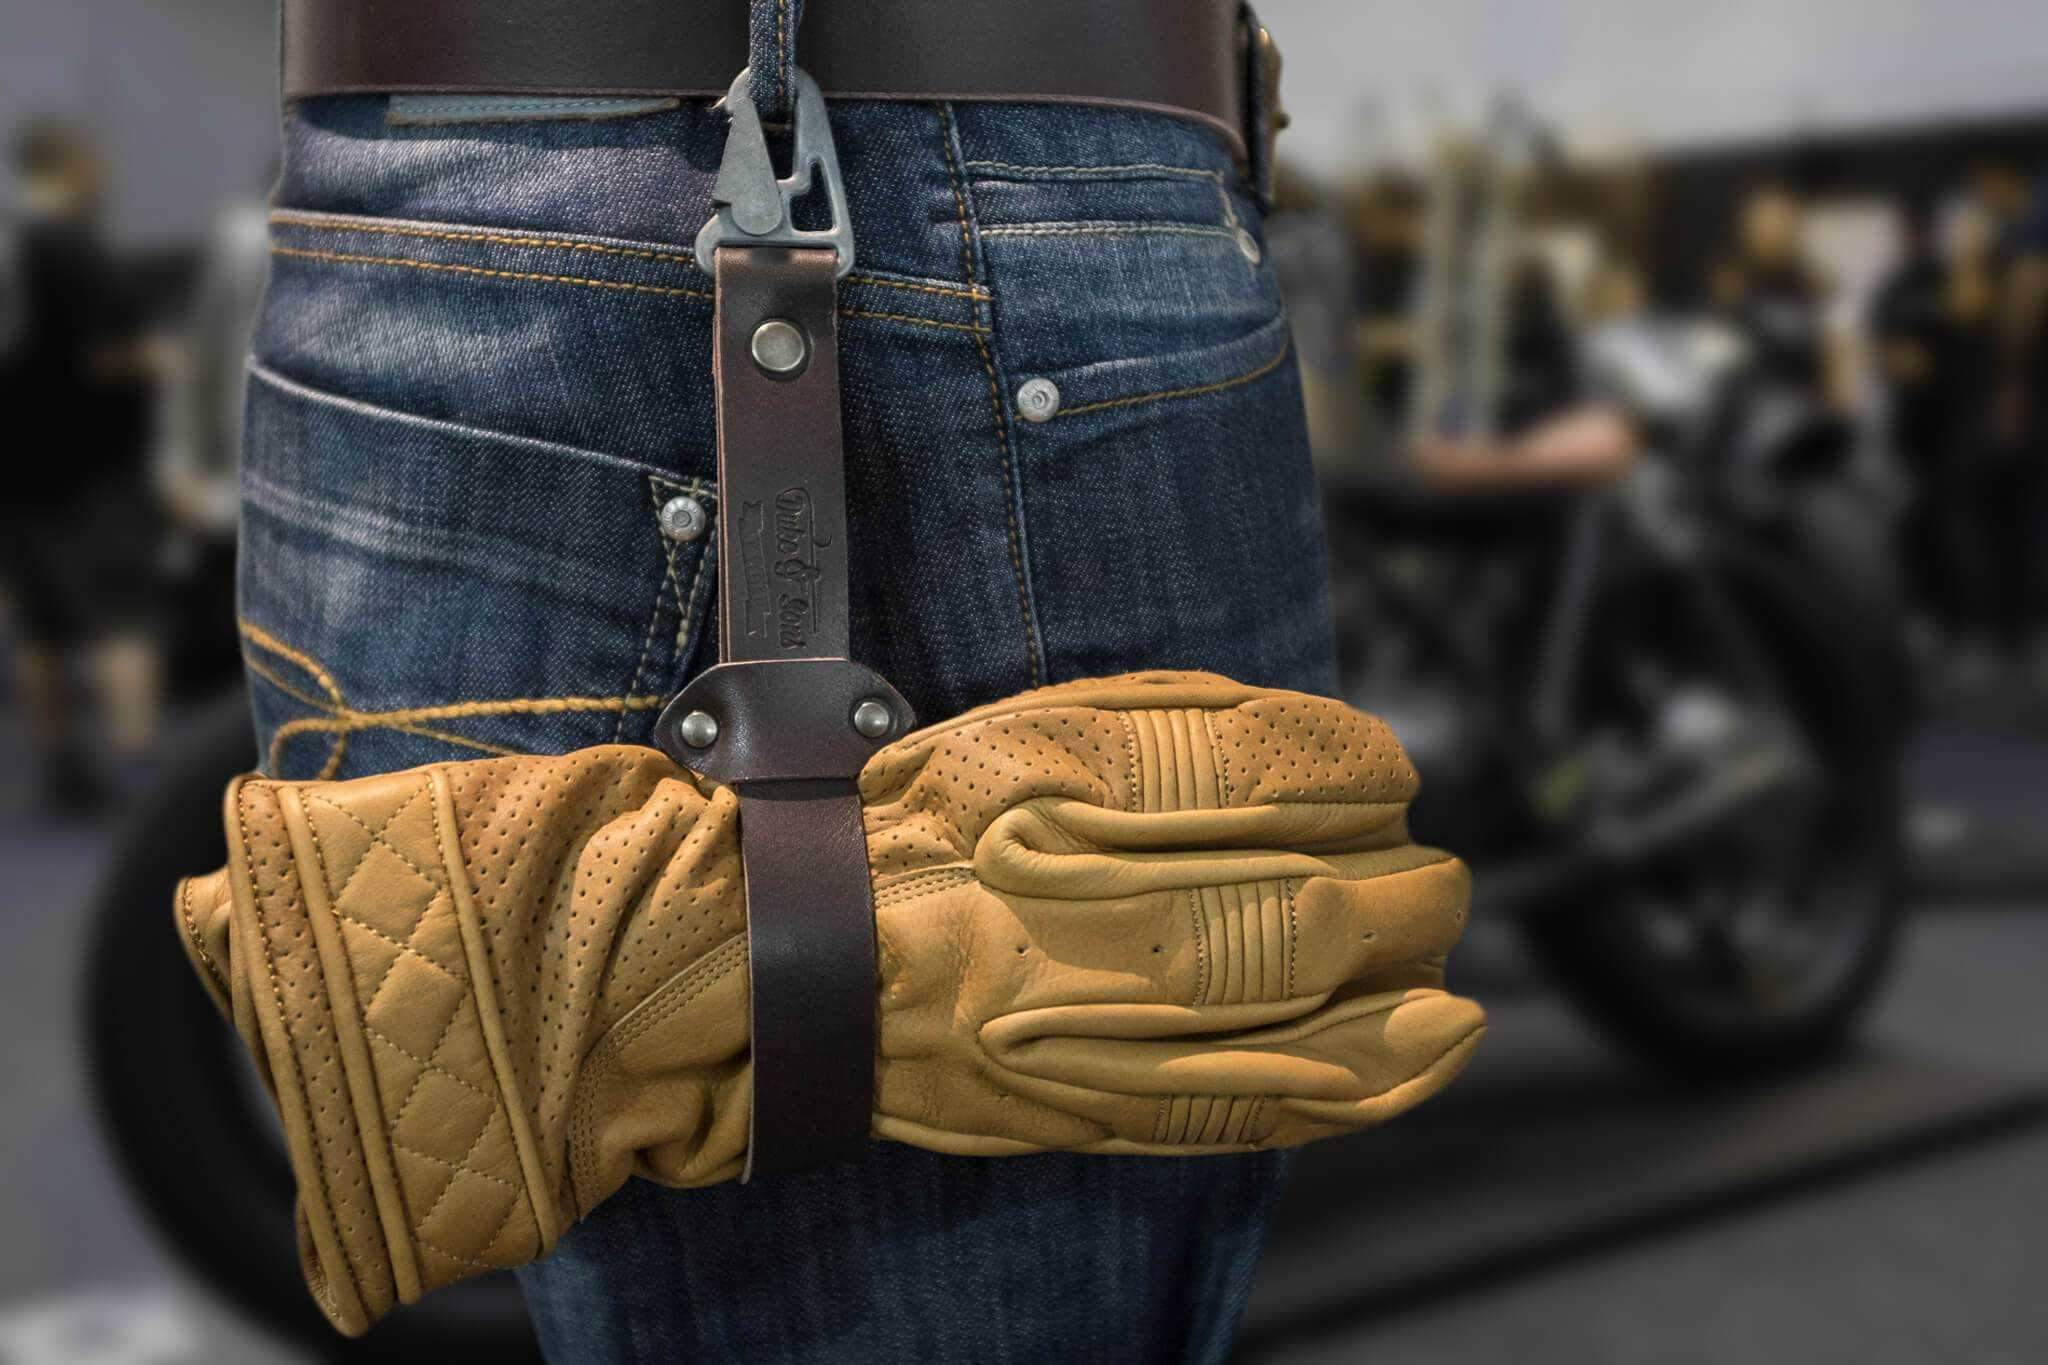 Glove strap, leather strap to keep your gloves with you